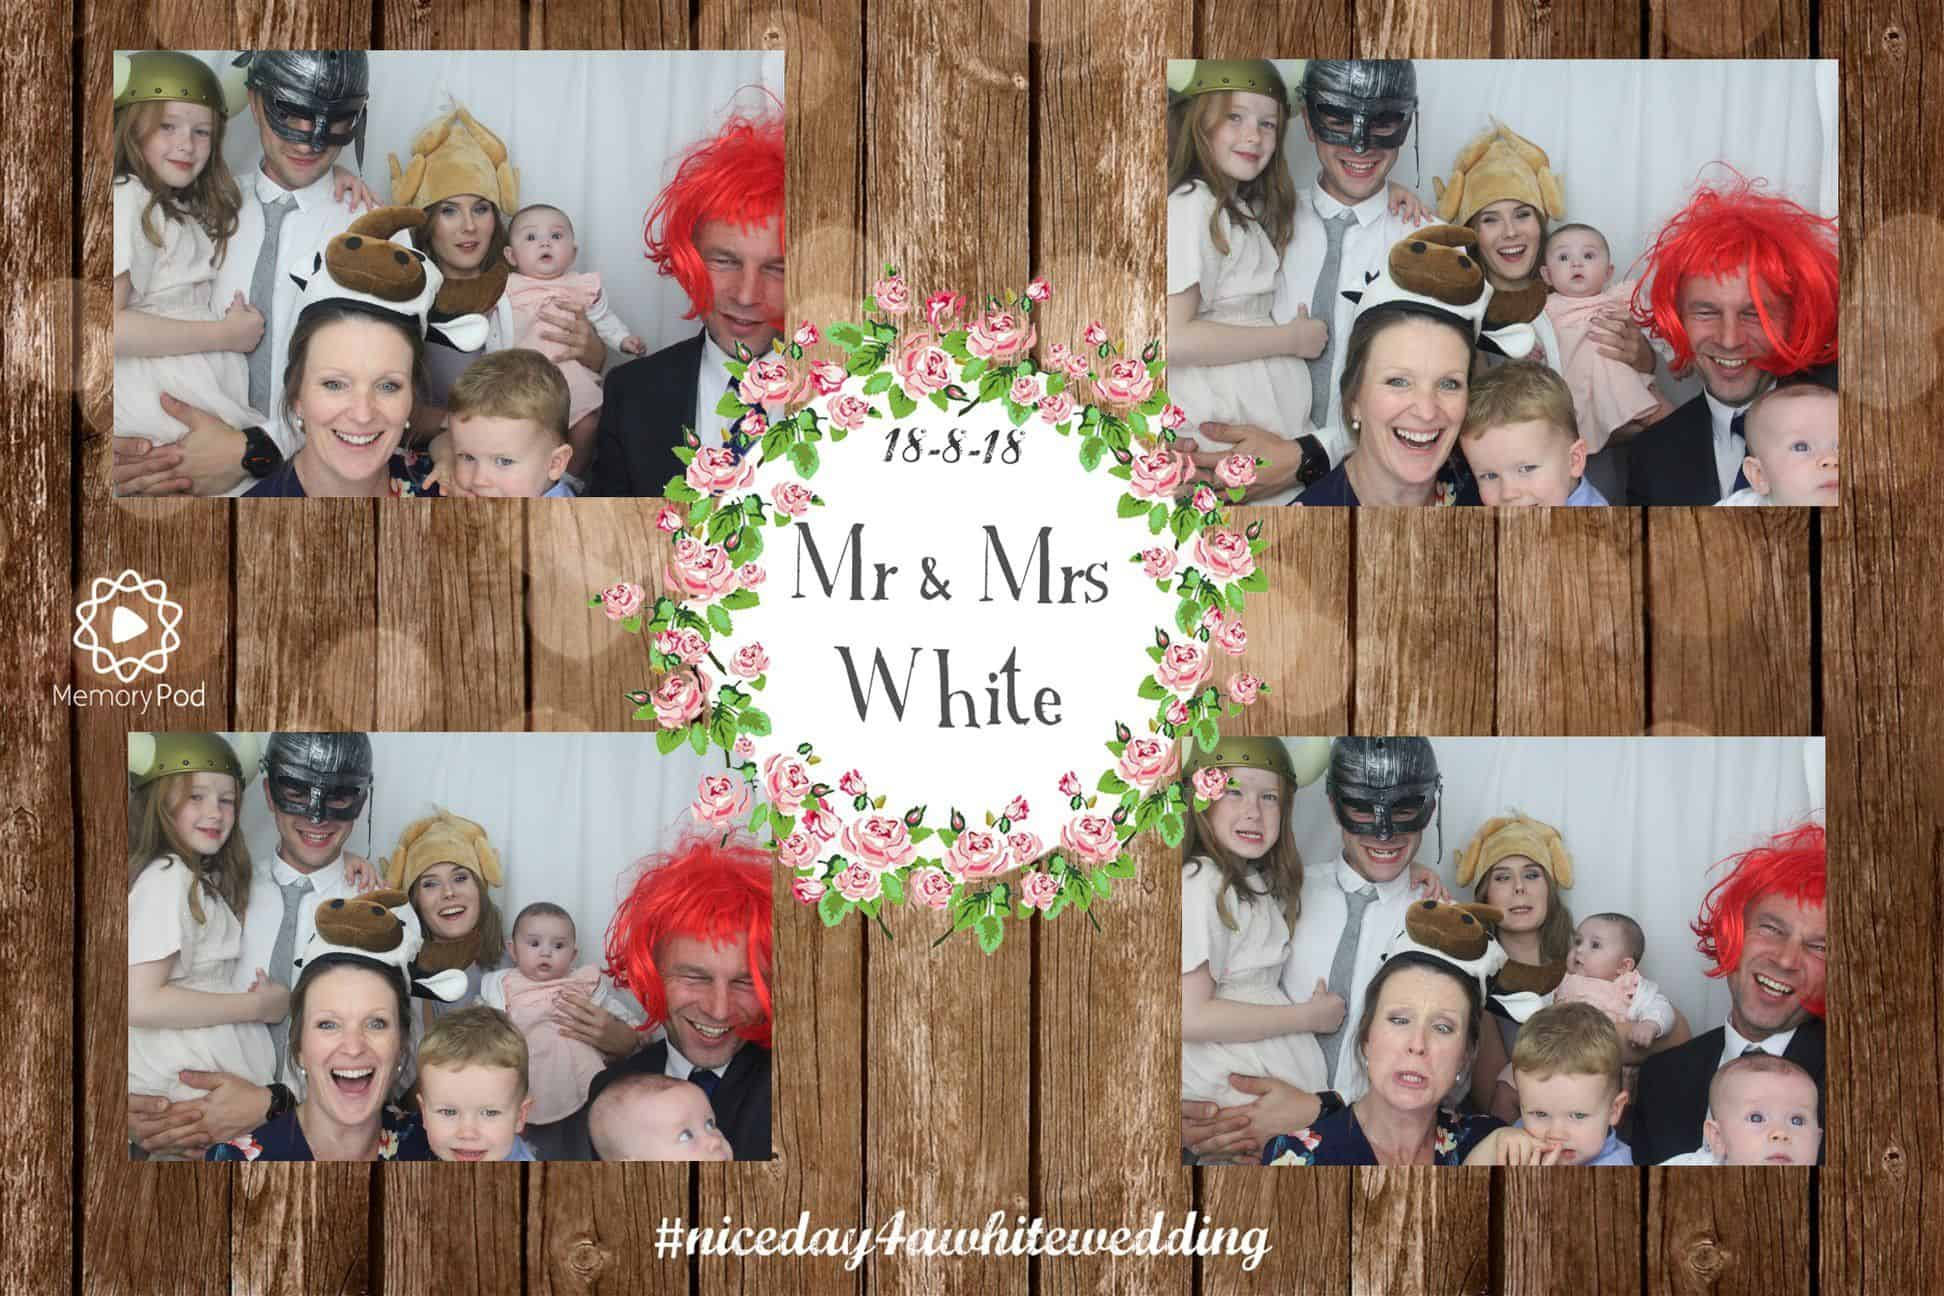 Mr and Mrs White Wedding